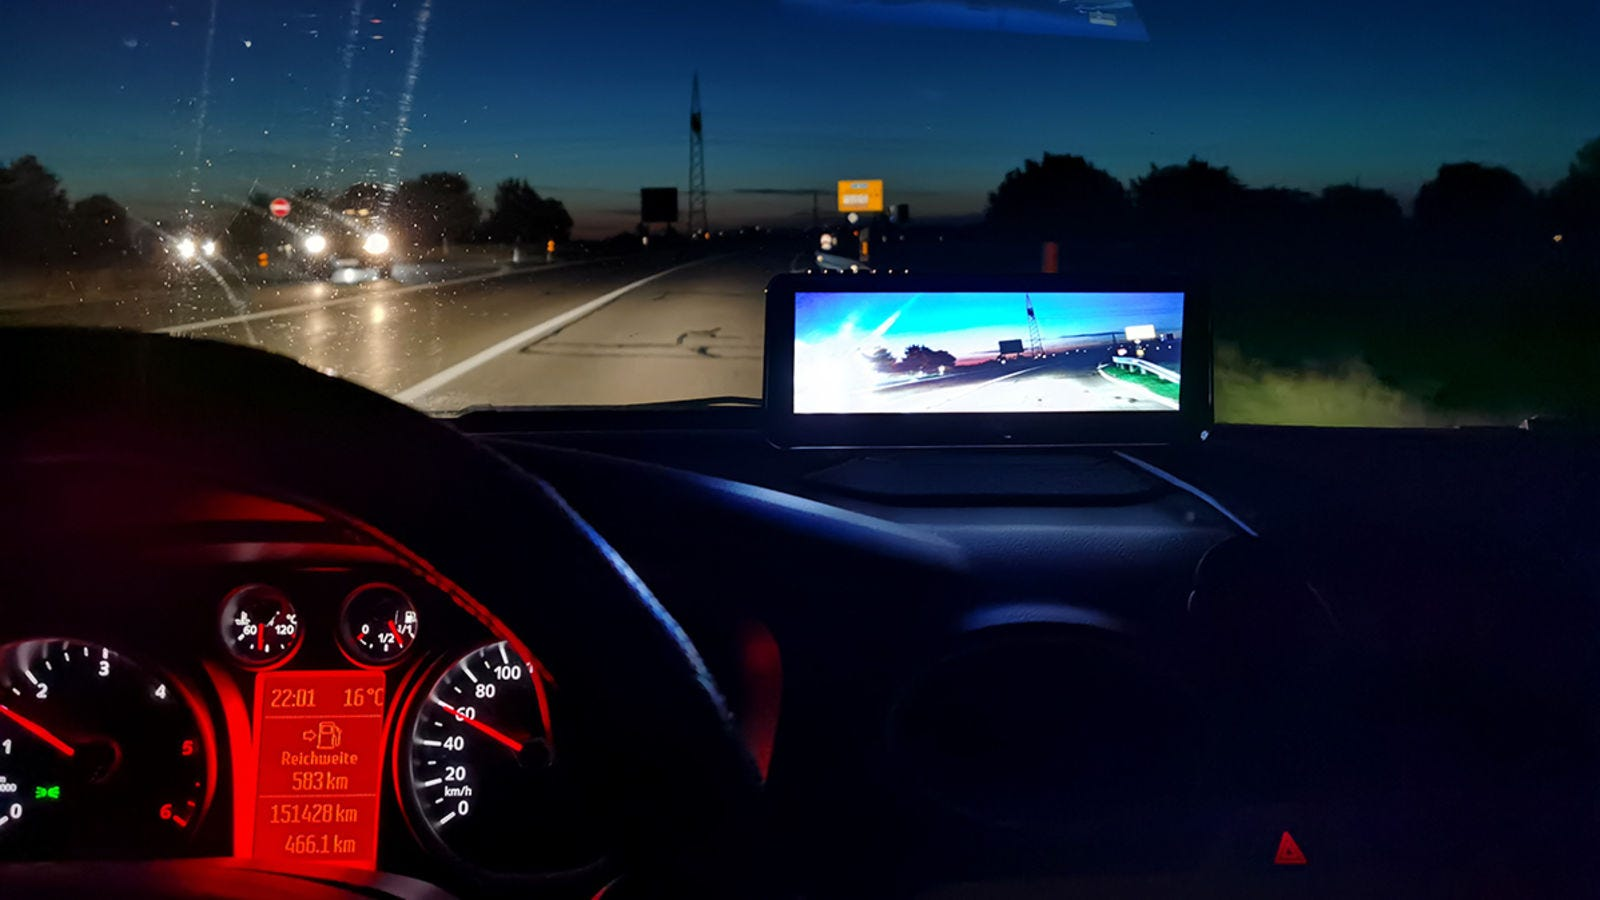 The biggest inconvenience is that the lights from the cars going in the opposite direction tend to generate too much brightness on the screen.